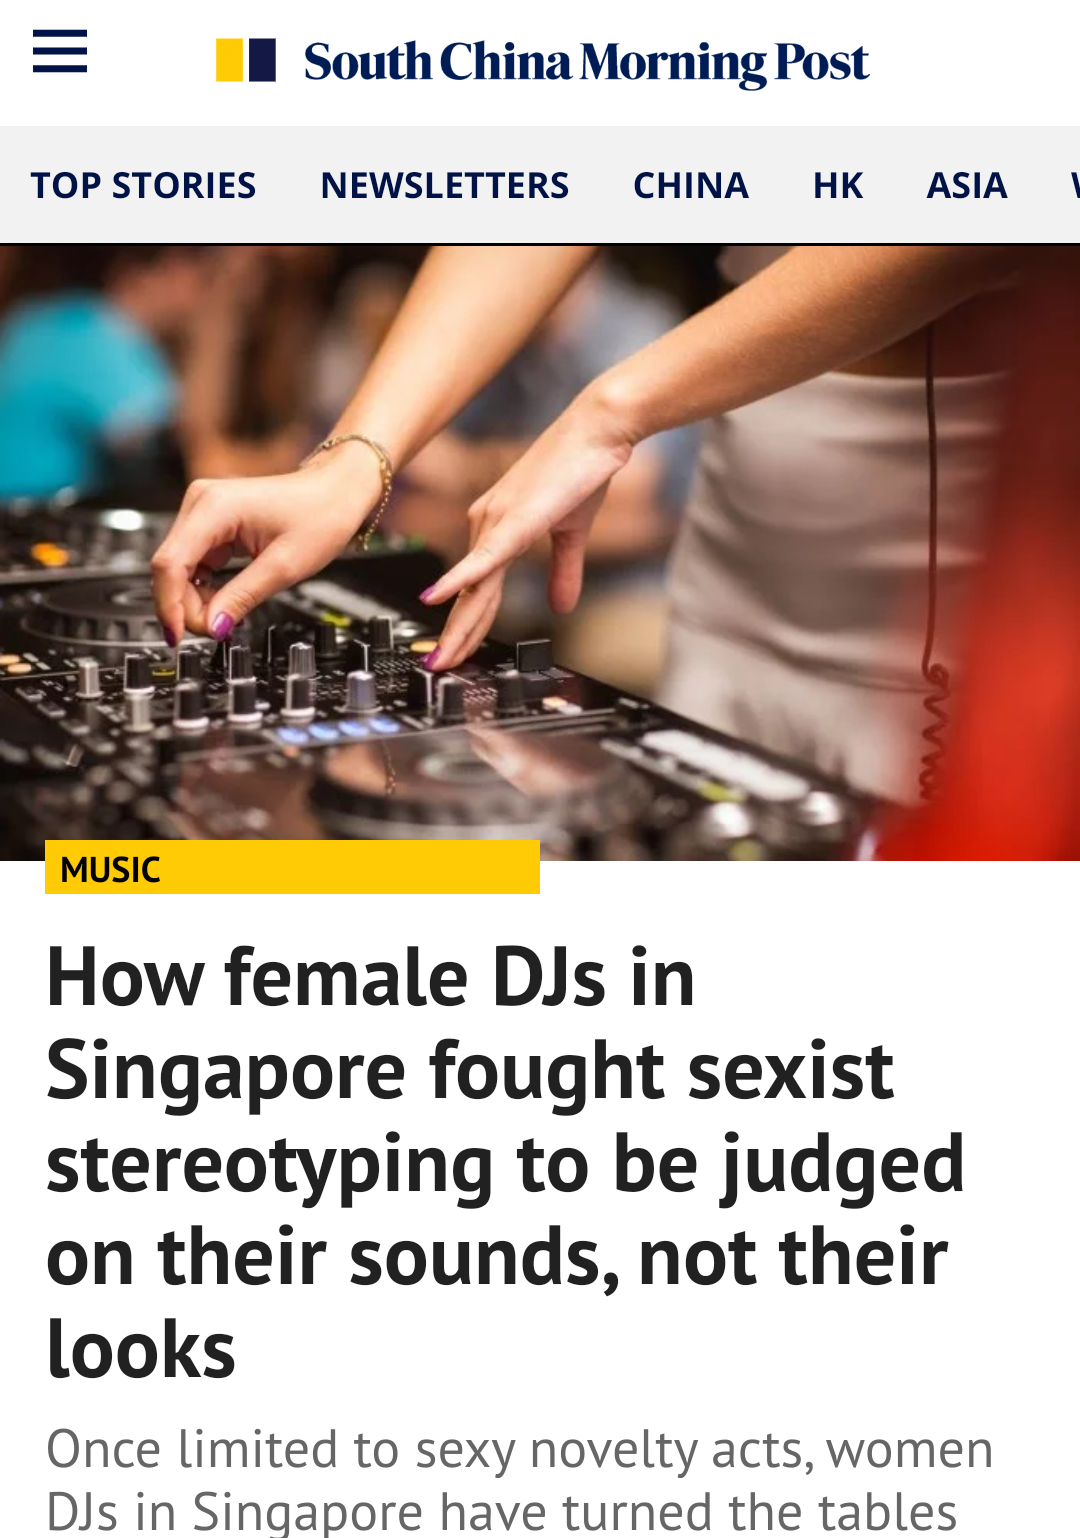 Female DJs story for SCMP